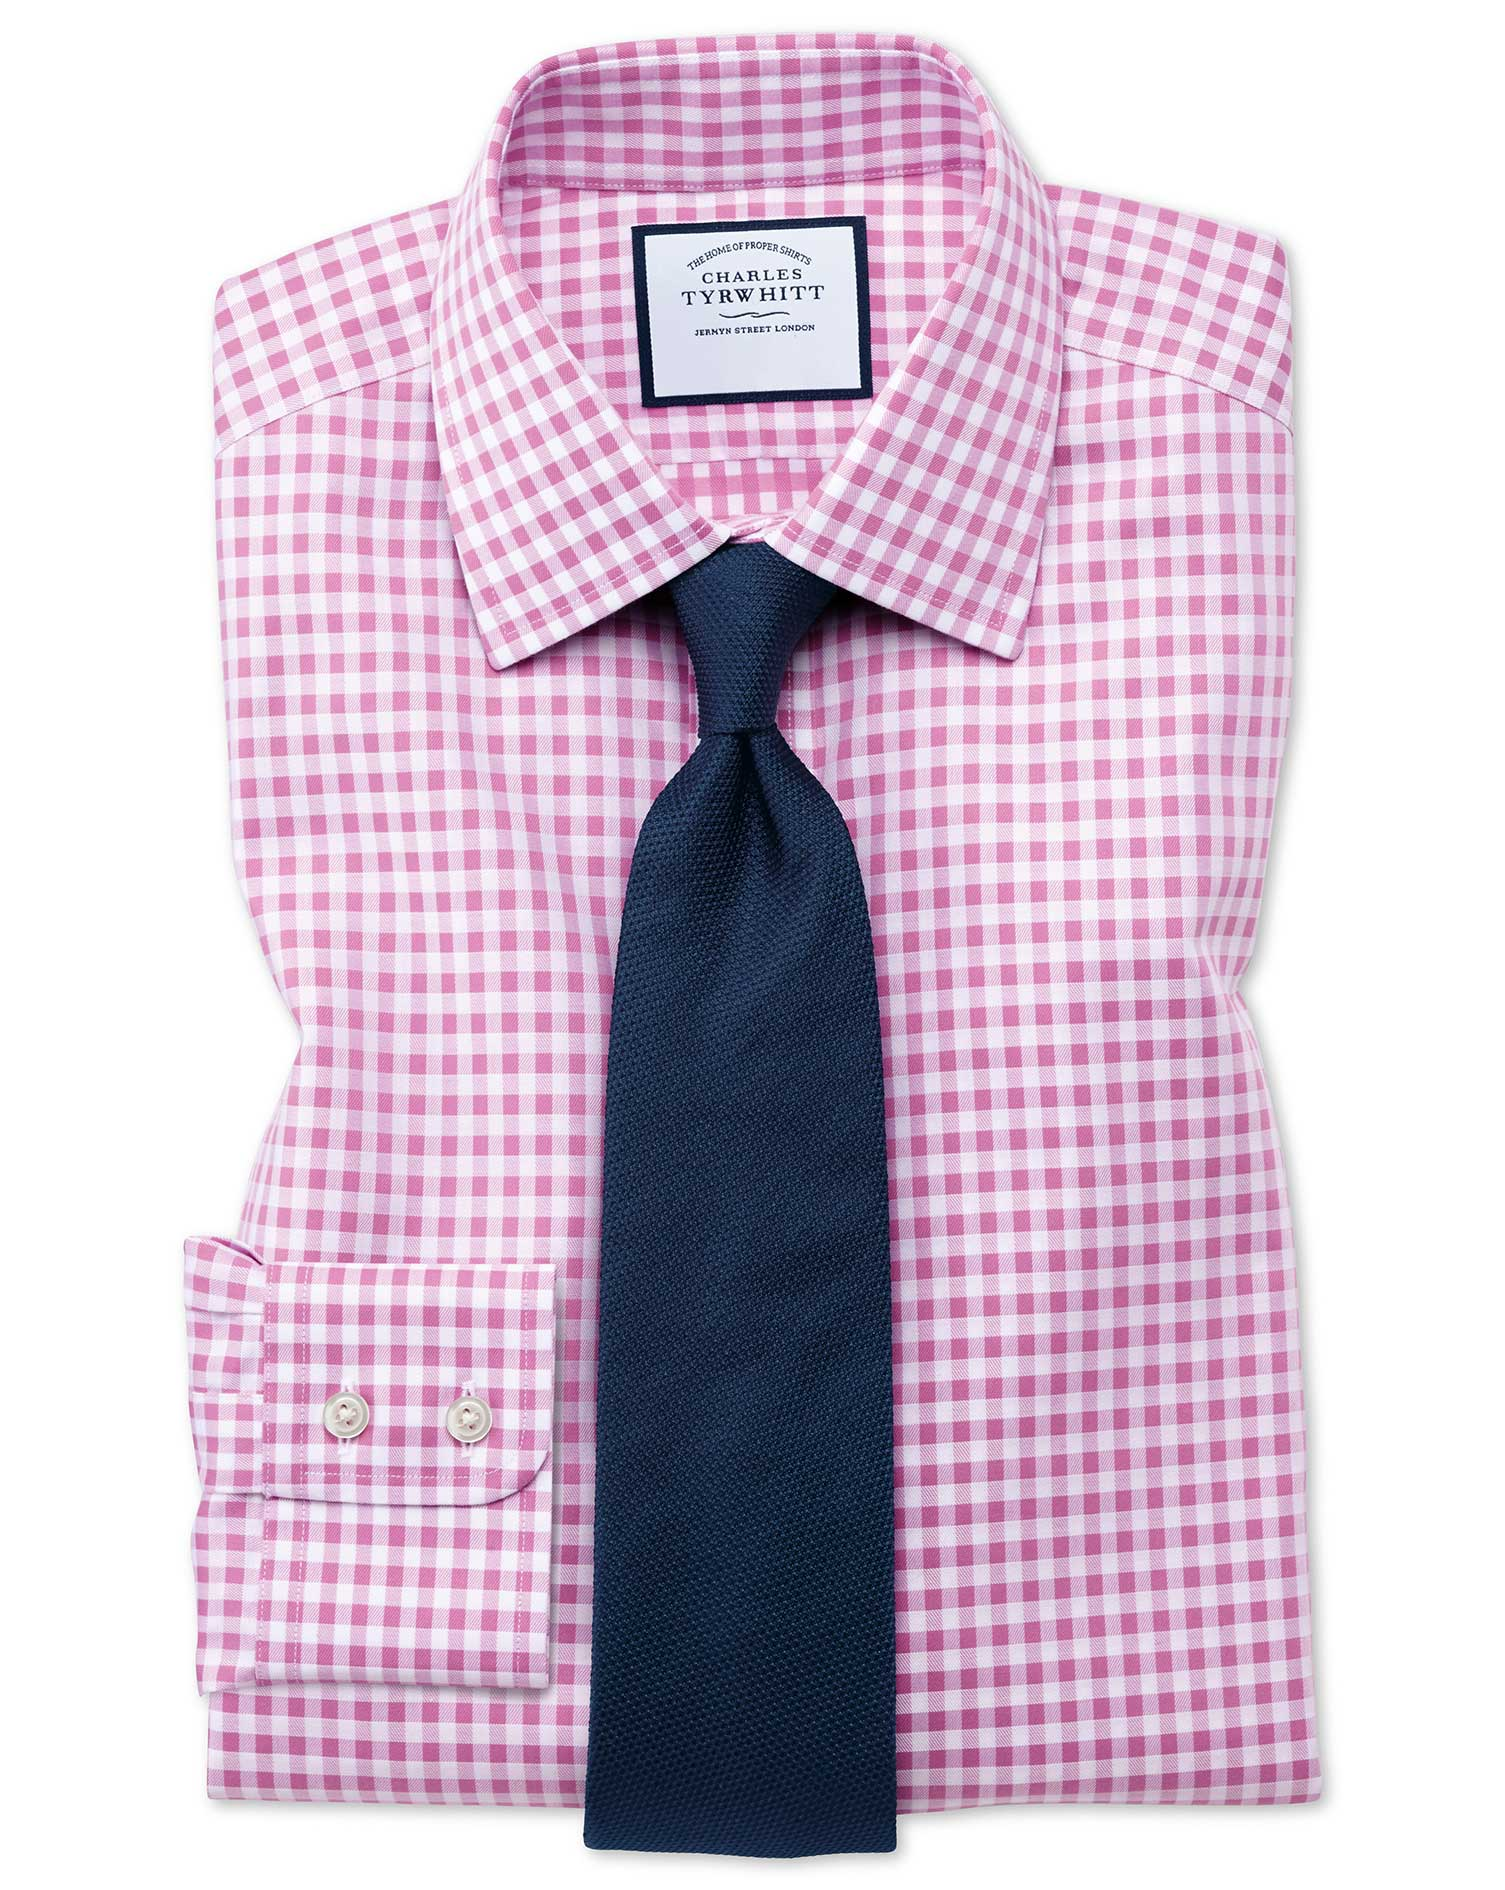 Slim Fit Non-Iron Gingham Pink Cotton Formal Shirt Single Cuff Size 16.5/34 by Charles Tyrwhitt